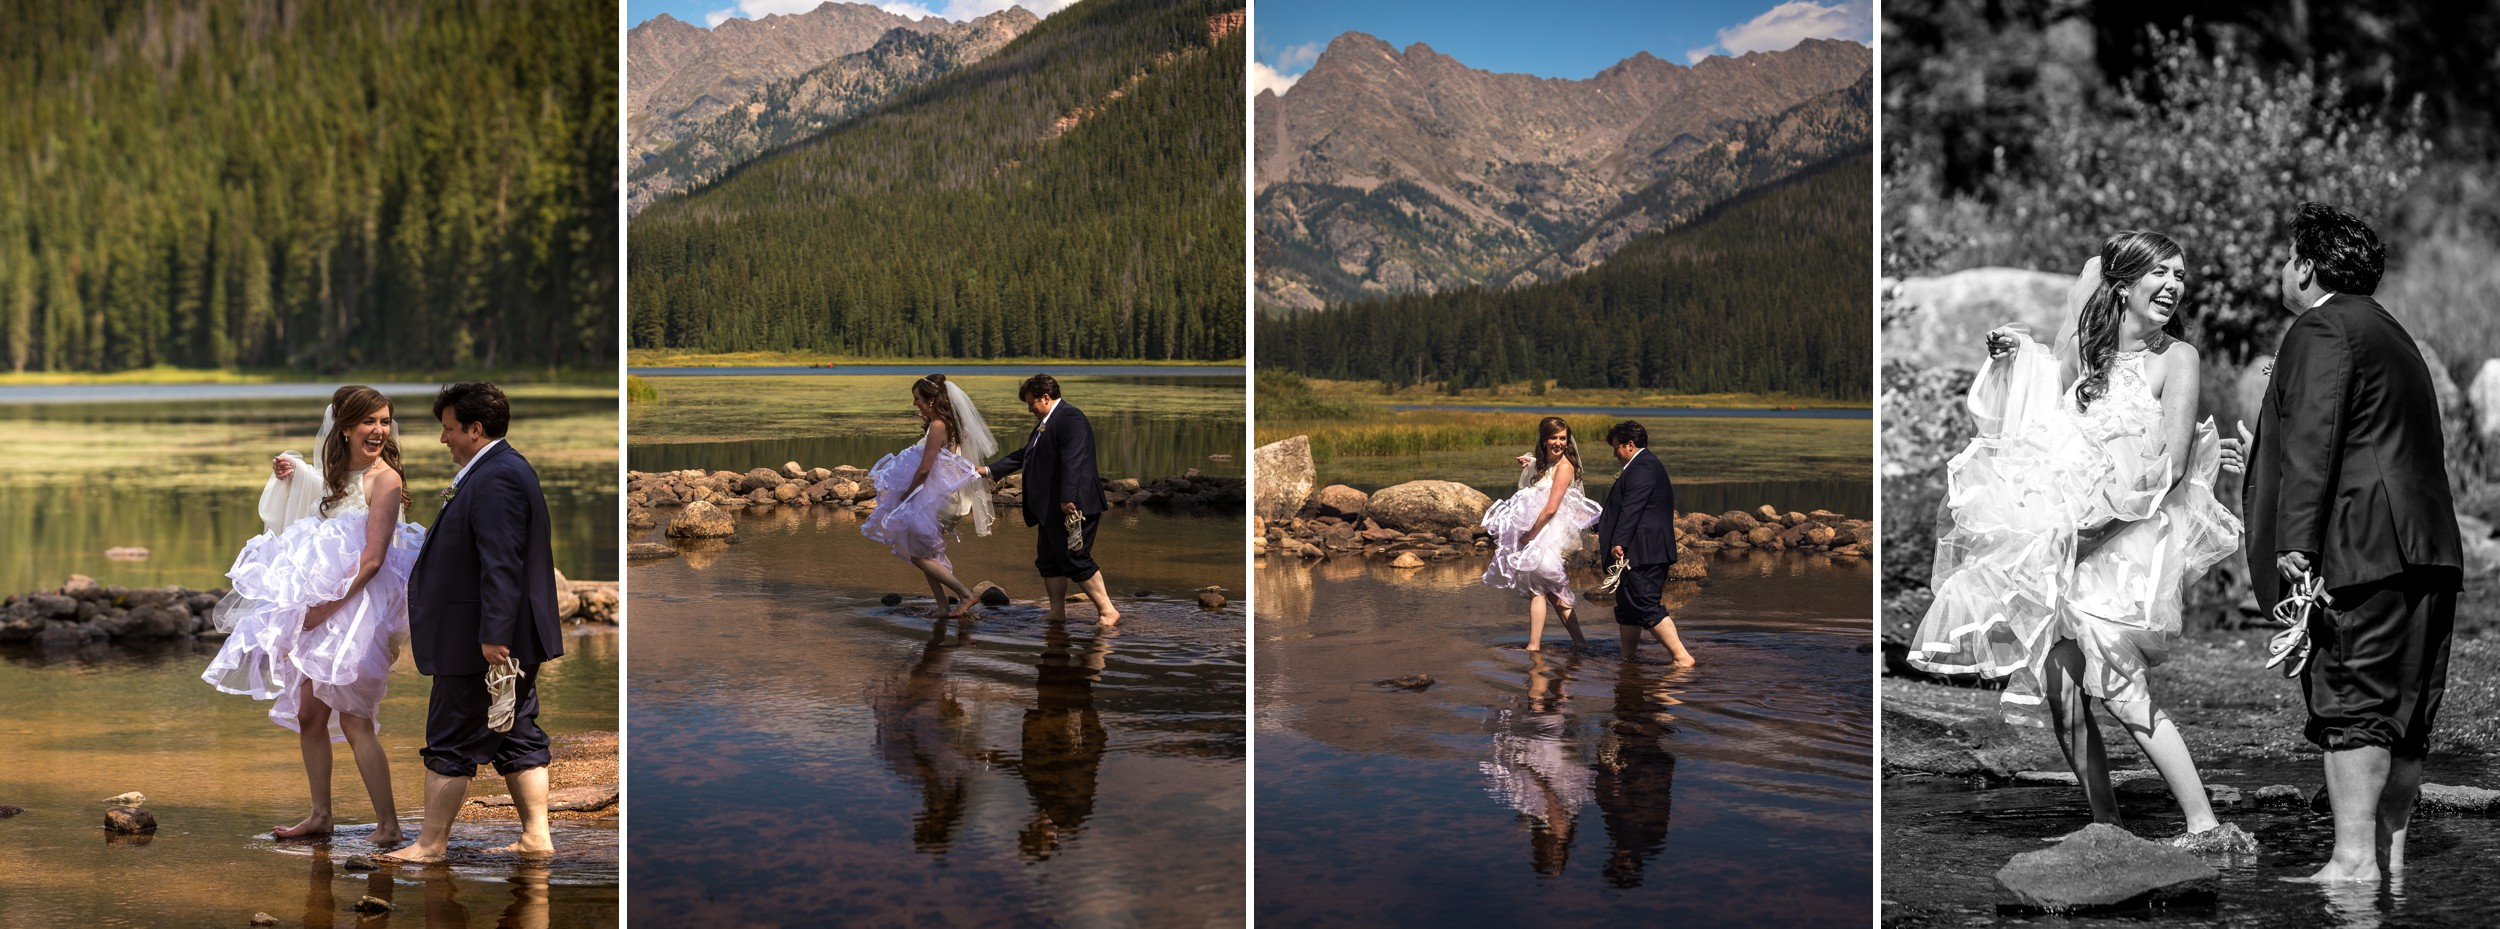 Piney_River_Ranch_Vail_Colorado_Wedding_Kristopher_Lindsay_Photography 6.jpg